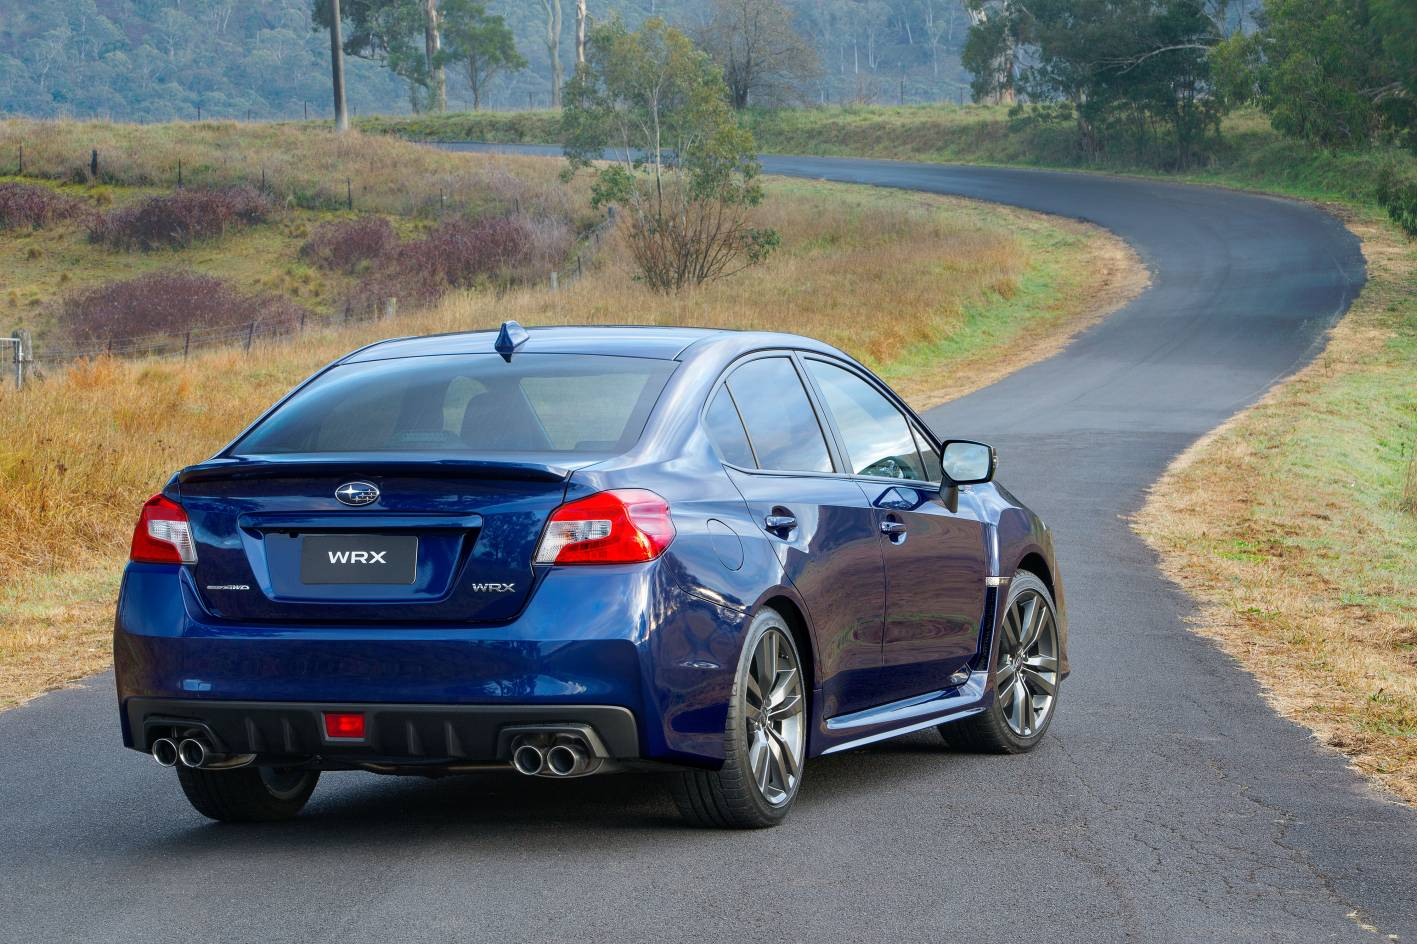 Wrx Cvt >> More gear and price update for 2016 Subaru WRX and WRX STI - ForceGT.com